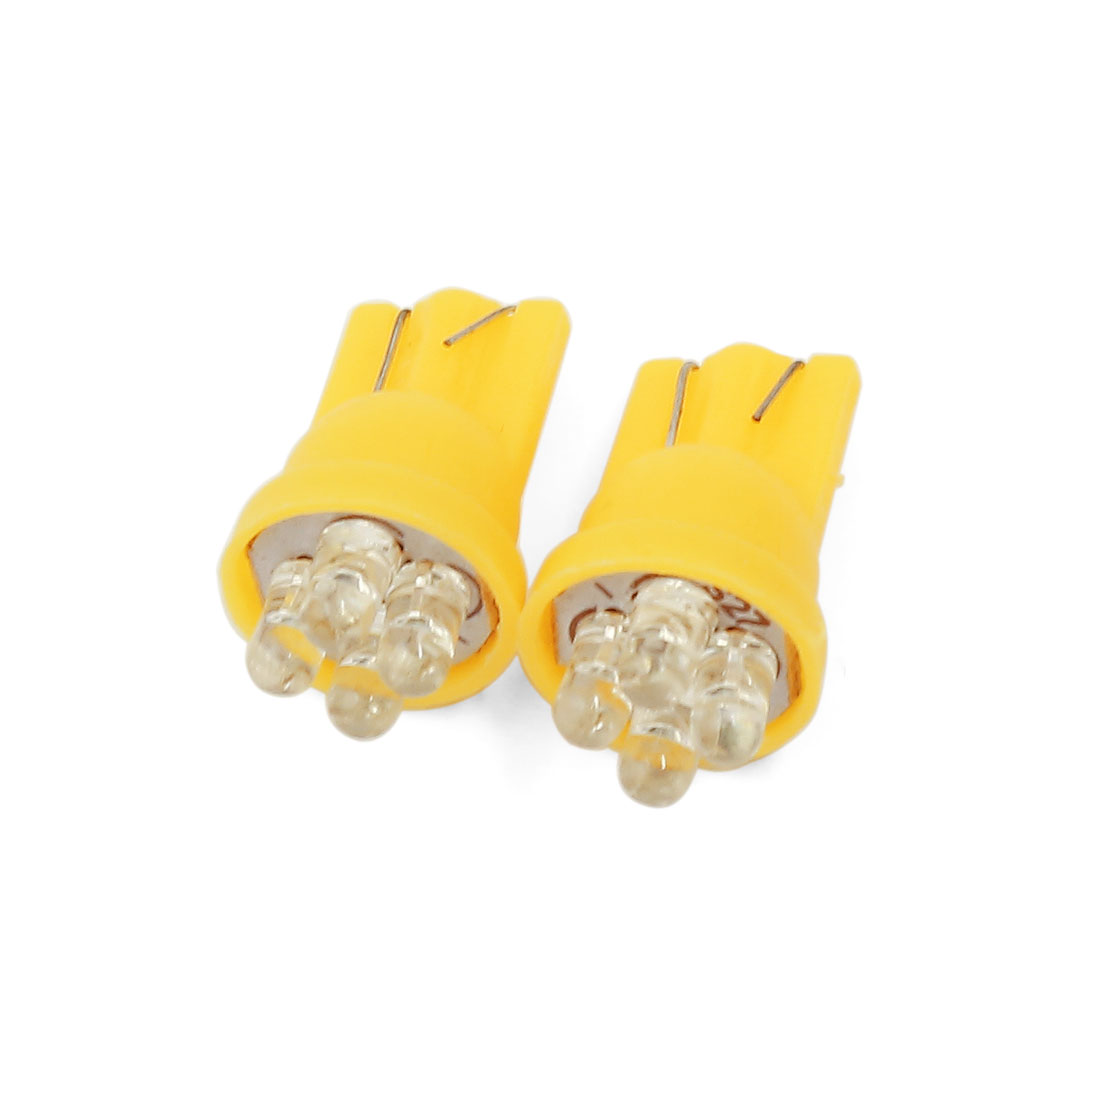 2 Pcs Yellow T10 Wedge 4-LEDs Dashboard Light Bulbs W5W 194 192 1252 Interior